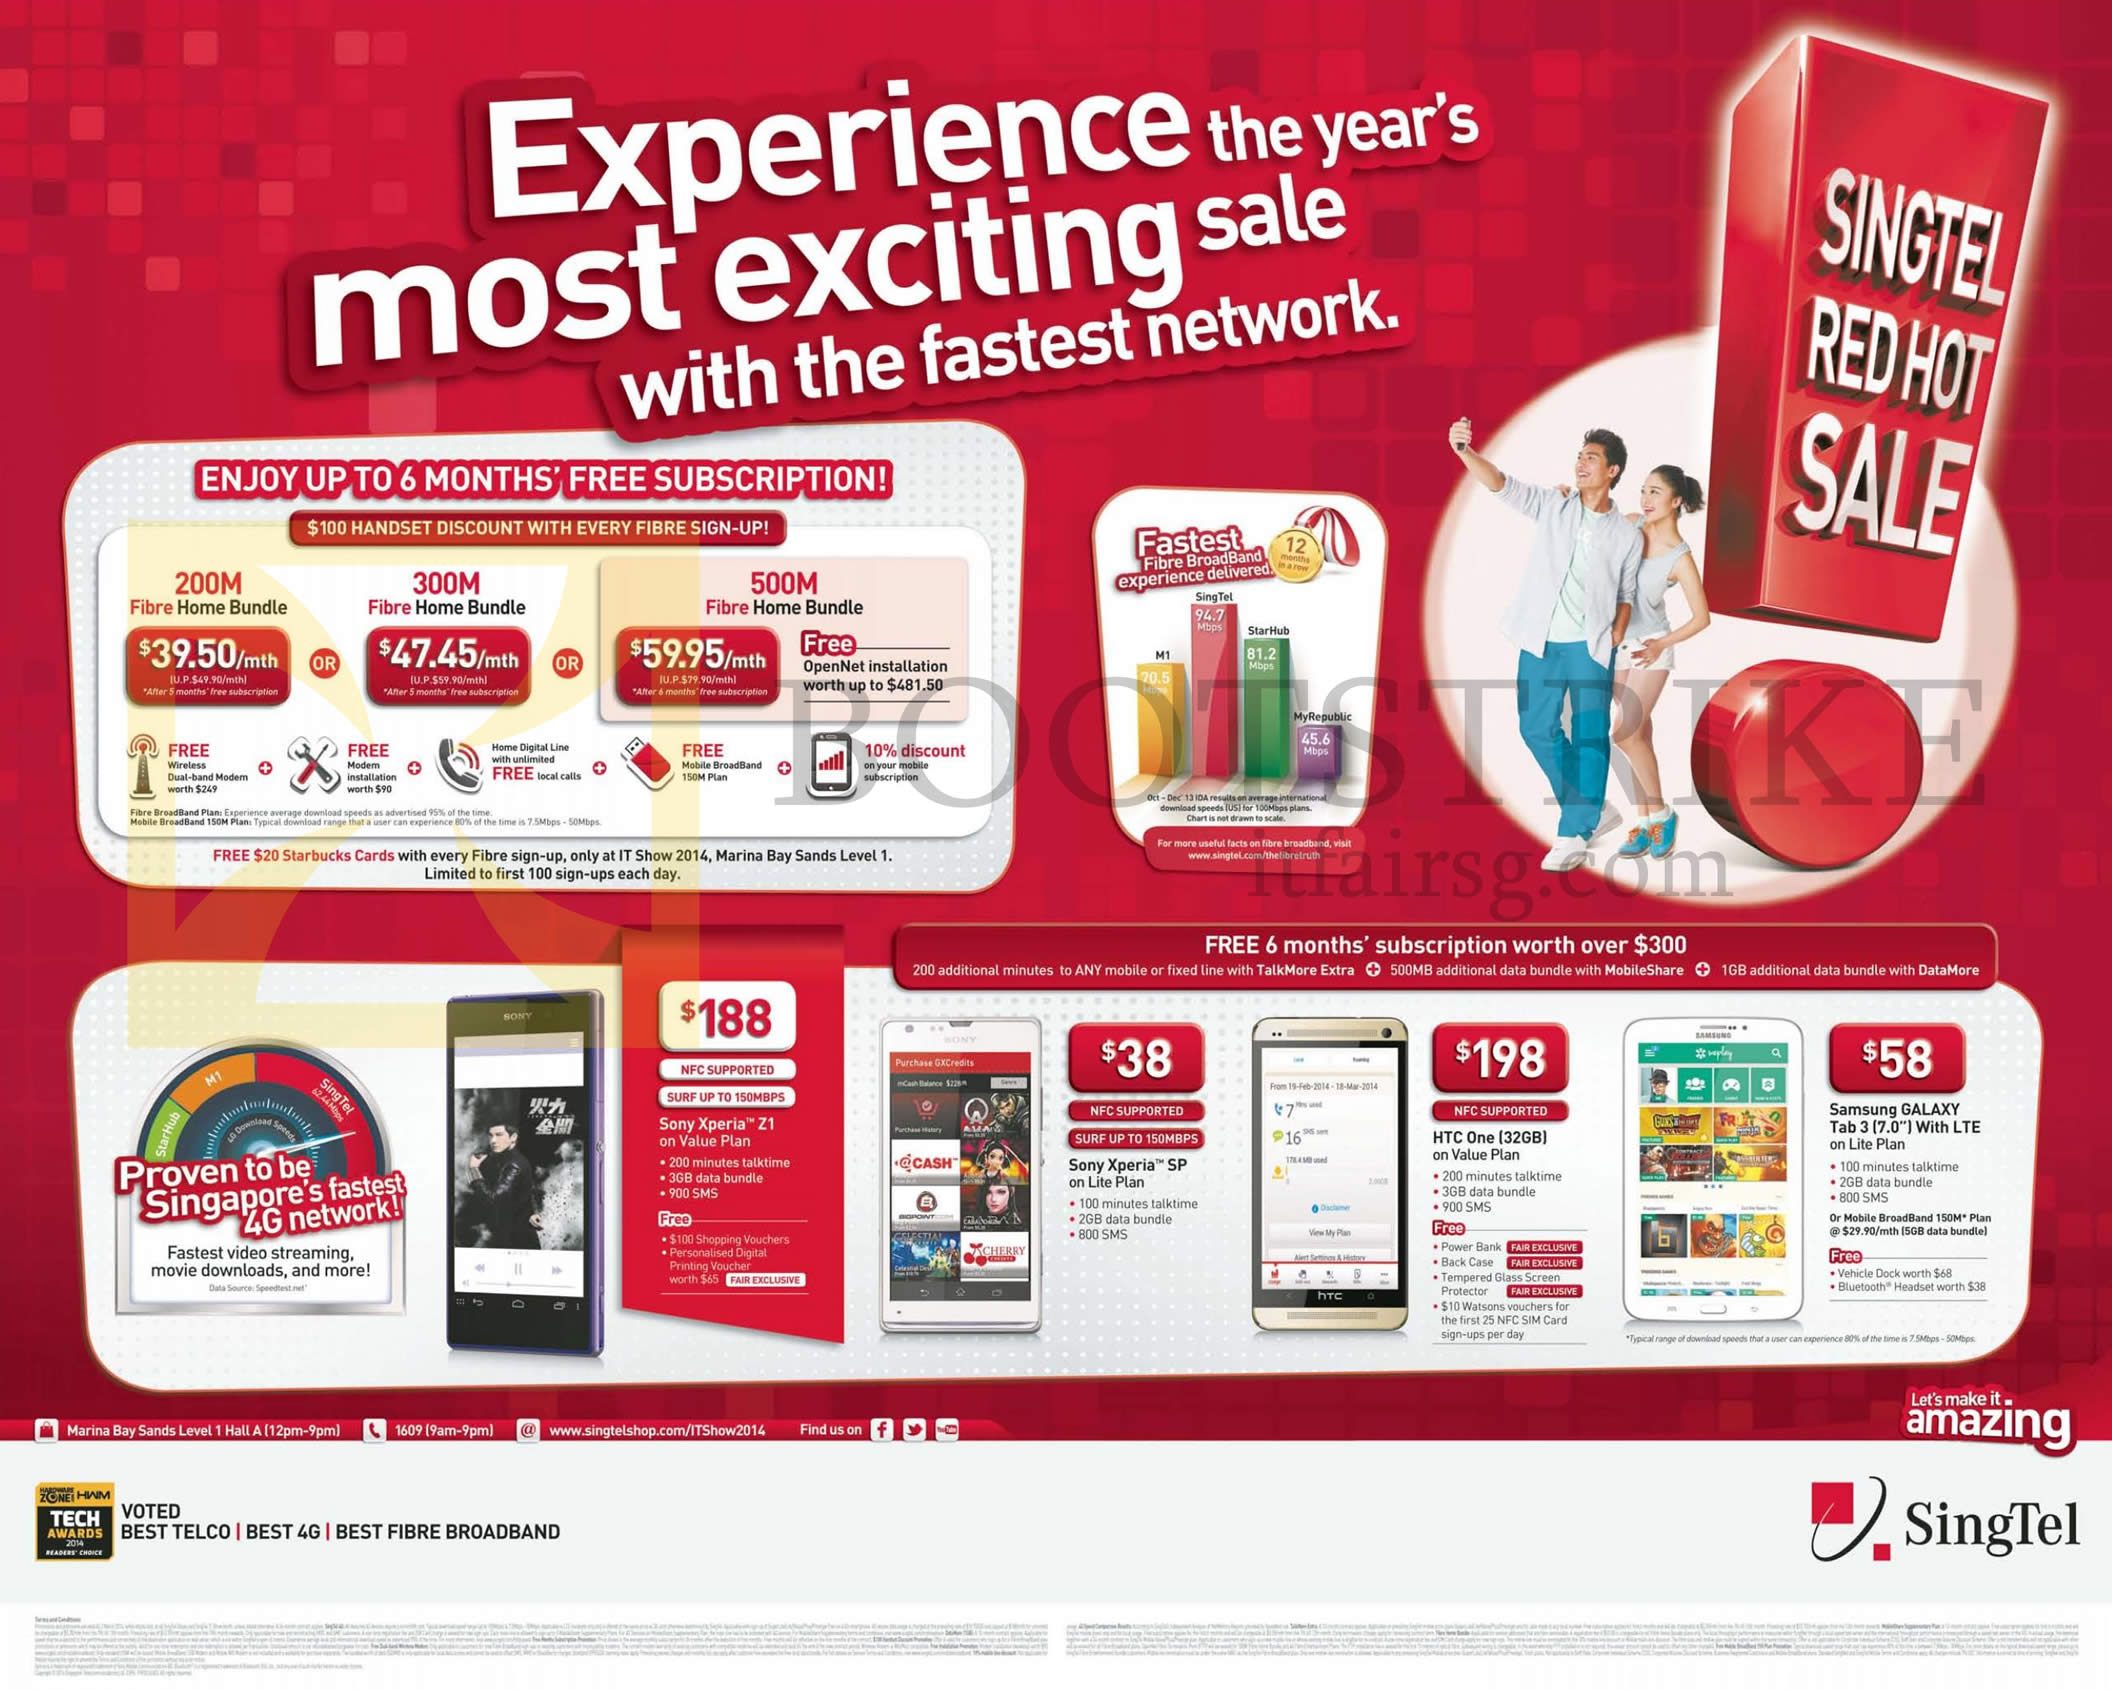 singtel fibre home bundles dollar handset discount it show 2014 price list image brochure of singtel fibre home bundles 100 dollar handset discount